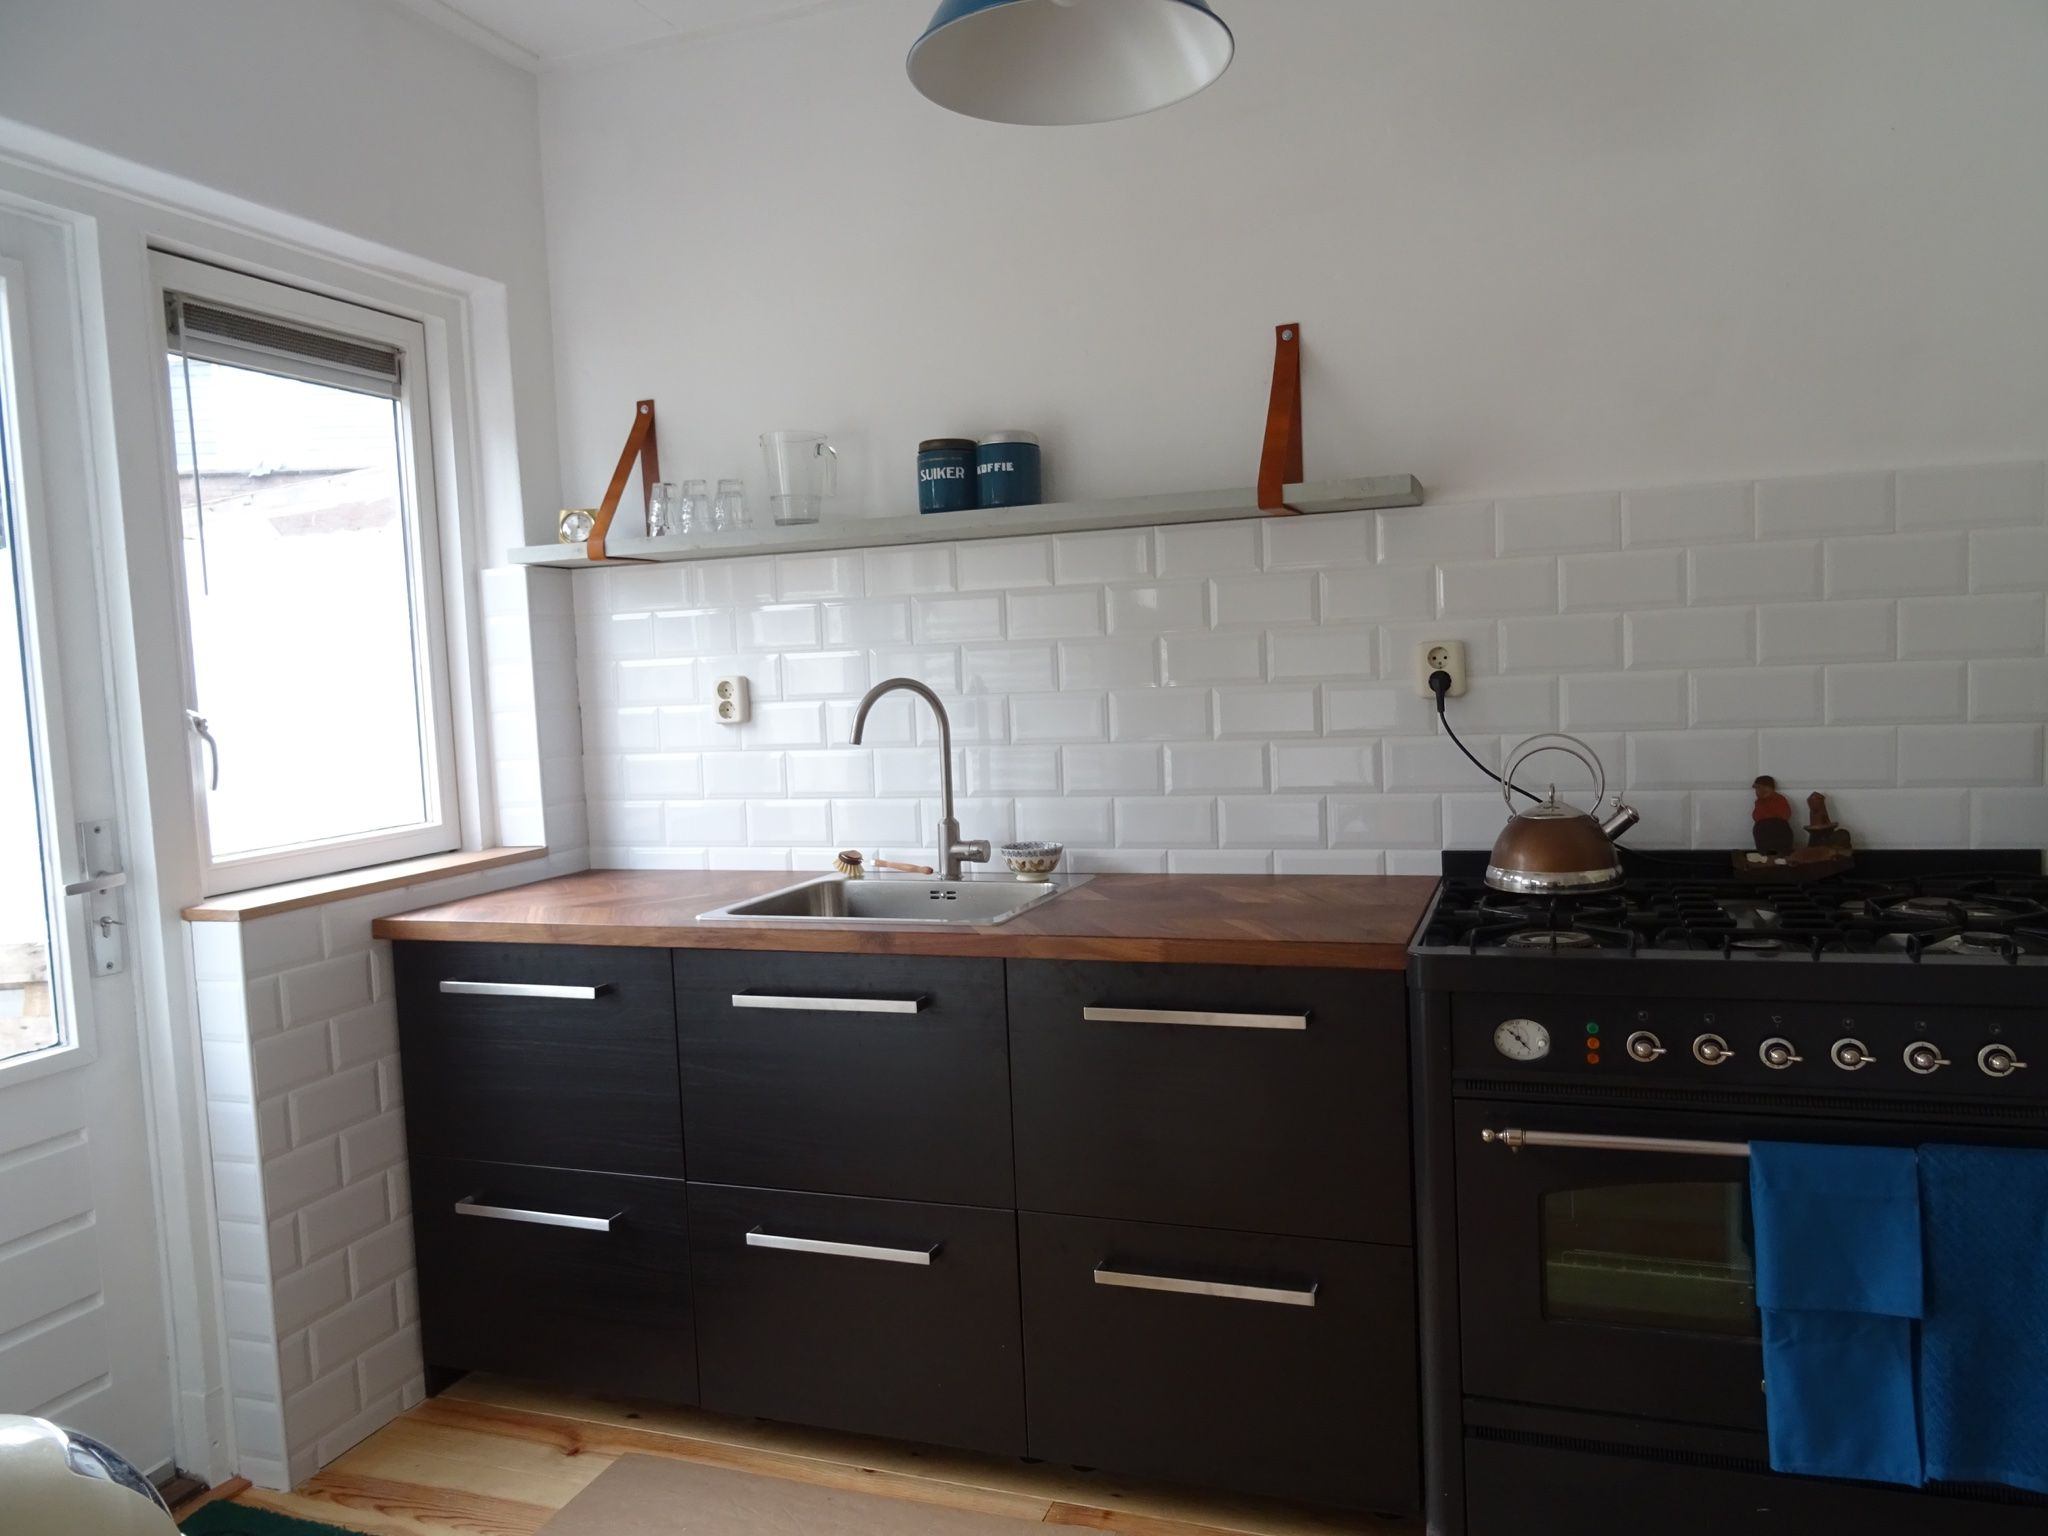 Keuken Verbouwen Arnhem Pin By Andrea Archer On Kitchen In 2019 Ikea Keuken Ikea Keuken